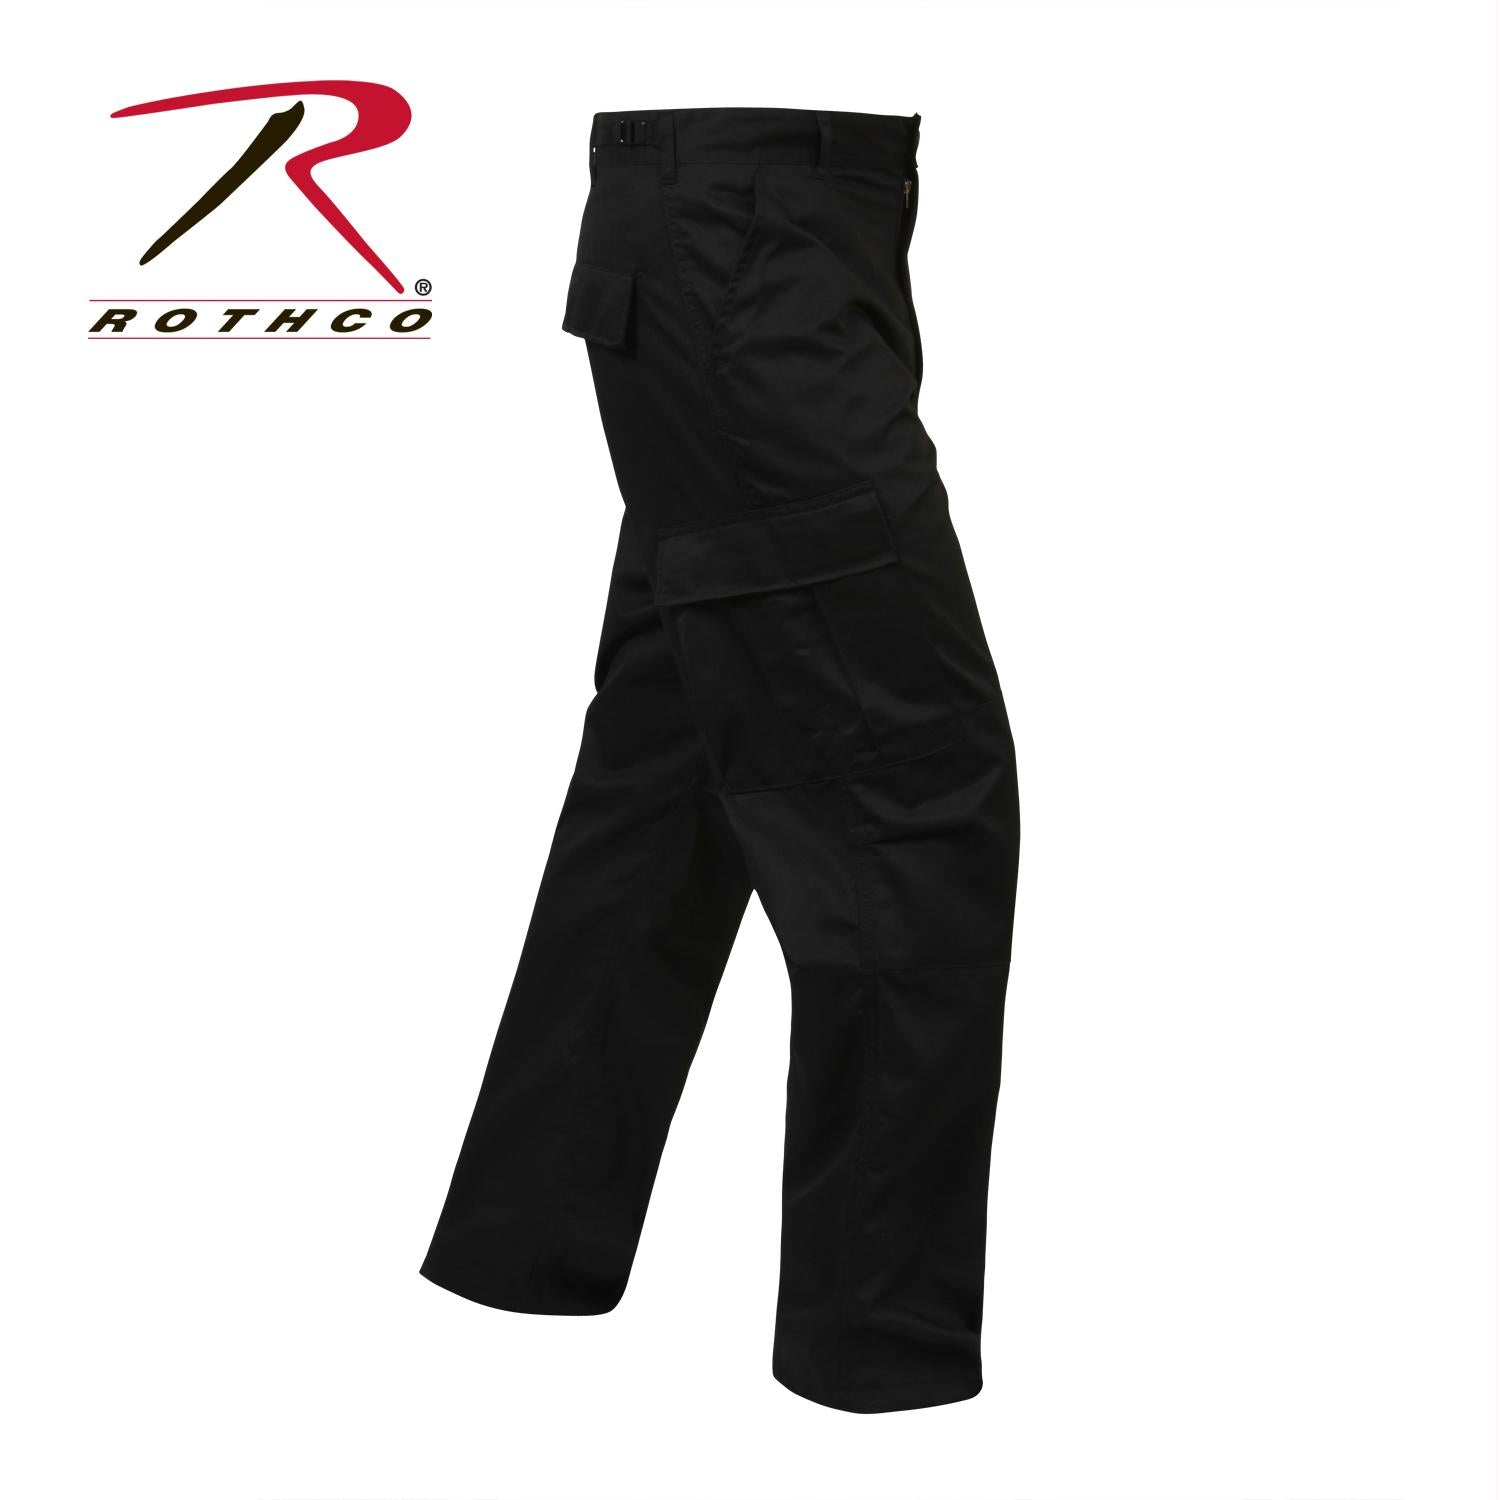 Rothco Relaxed Fit Zipper Fly BDU Pants - Black / 3XL